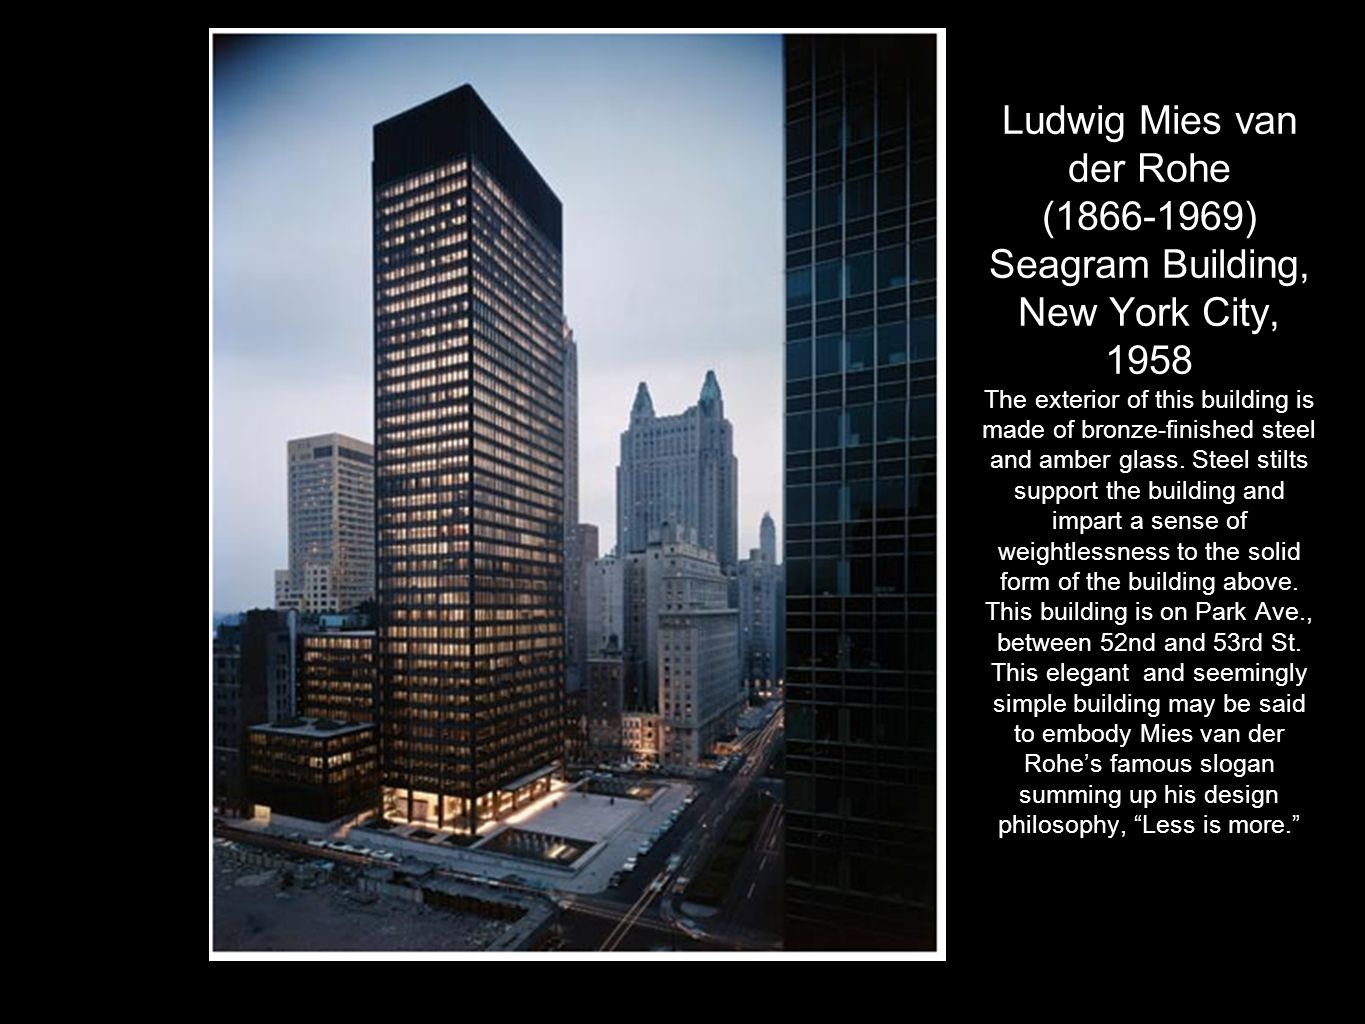 Ludwig Mies van der Rohe (1866-1969) Seagram Building, New York City, 1958 The exterior of this building is made of bronze-finished steel and amber glass.